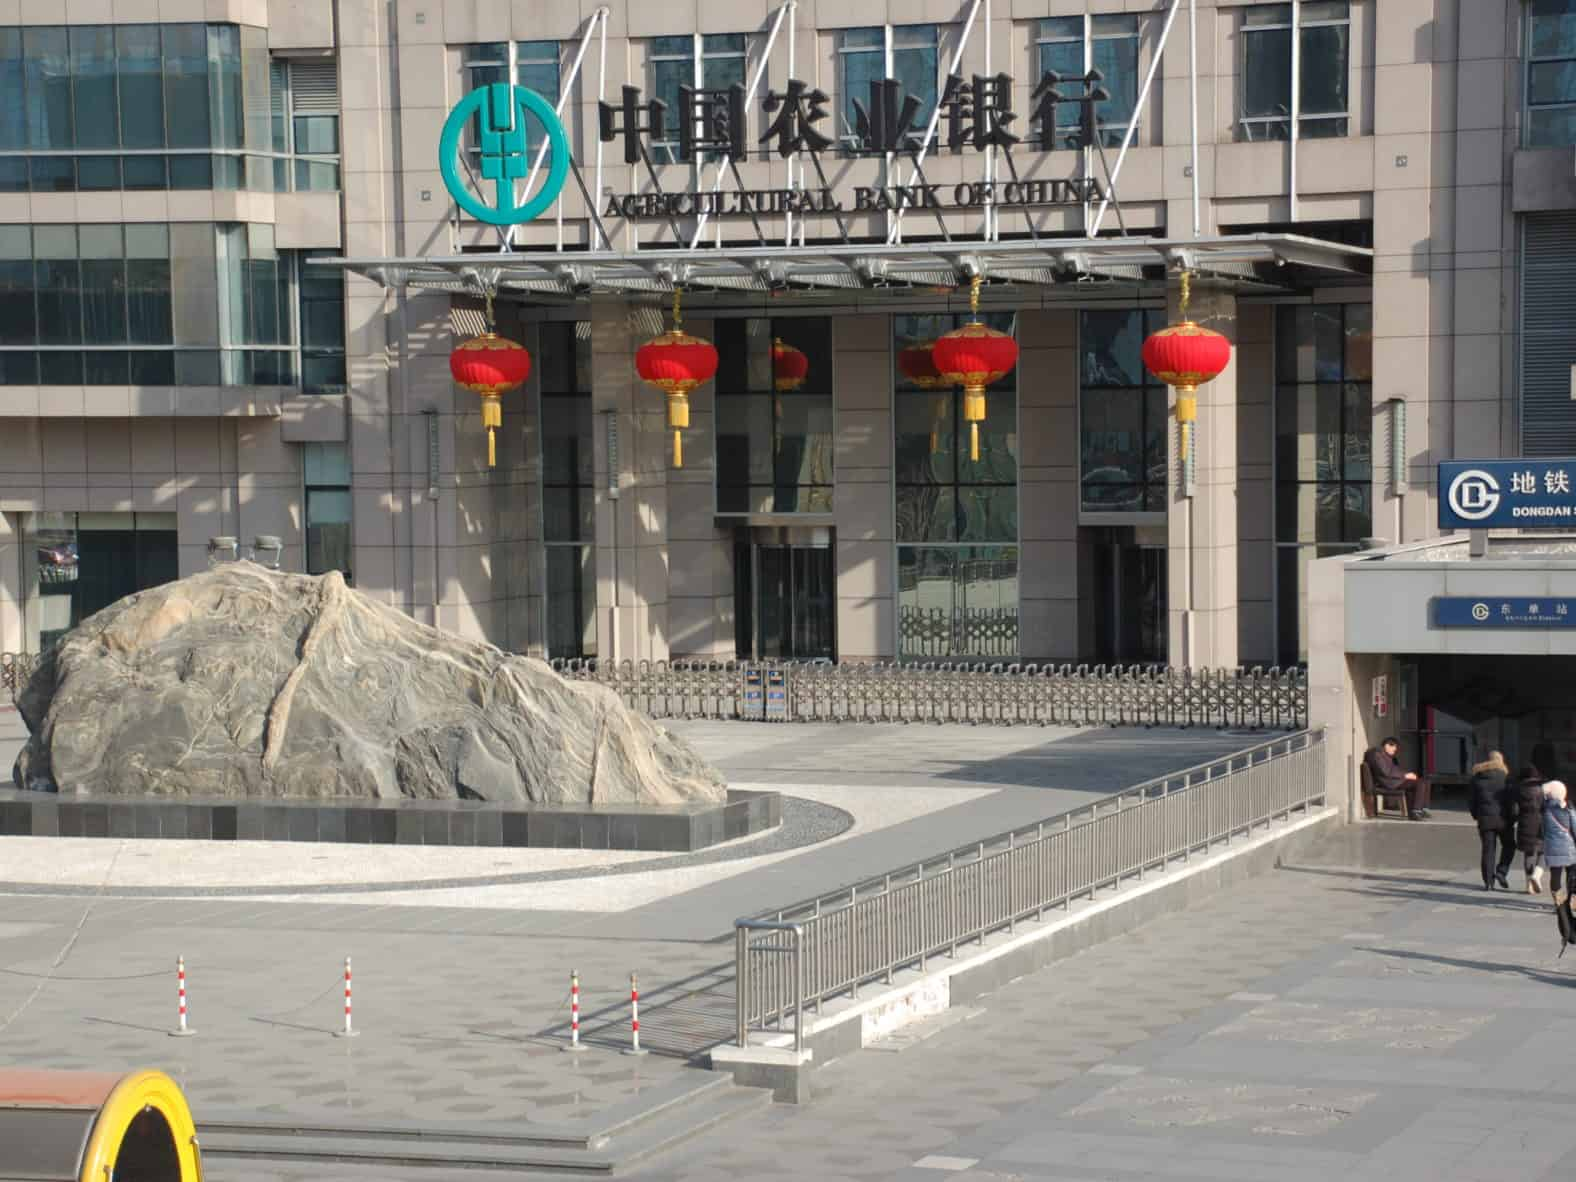 Agricultural Bank of China President Resigns for New Post with China Development Bank - China ...